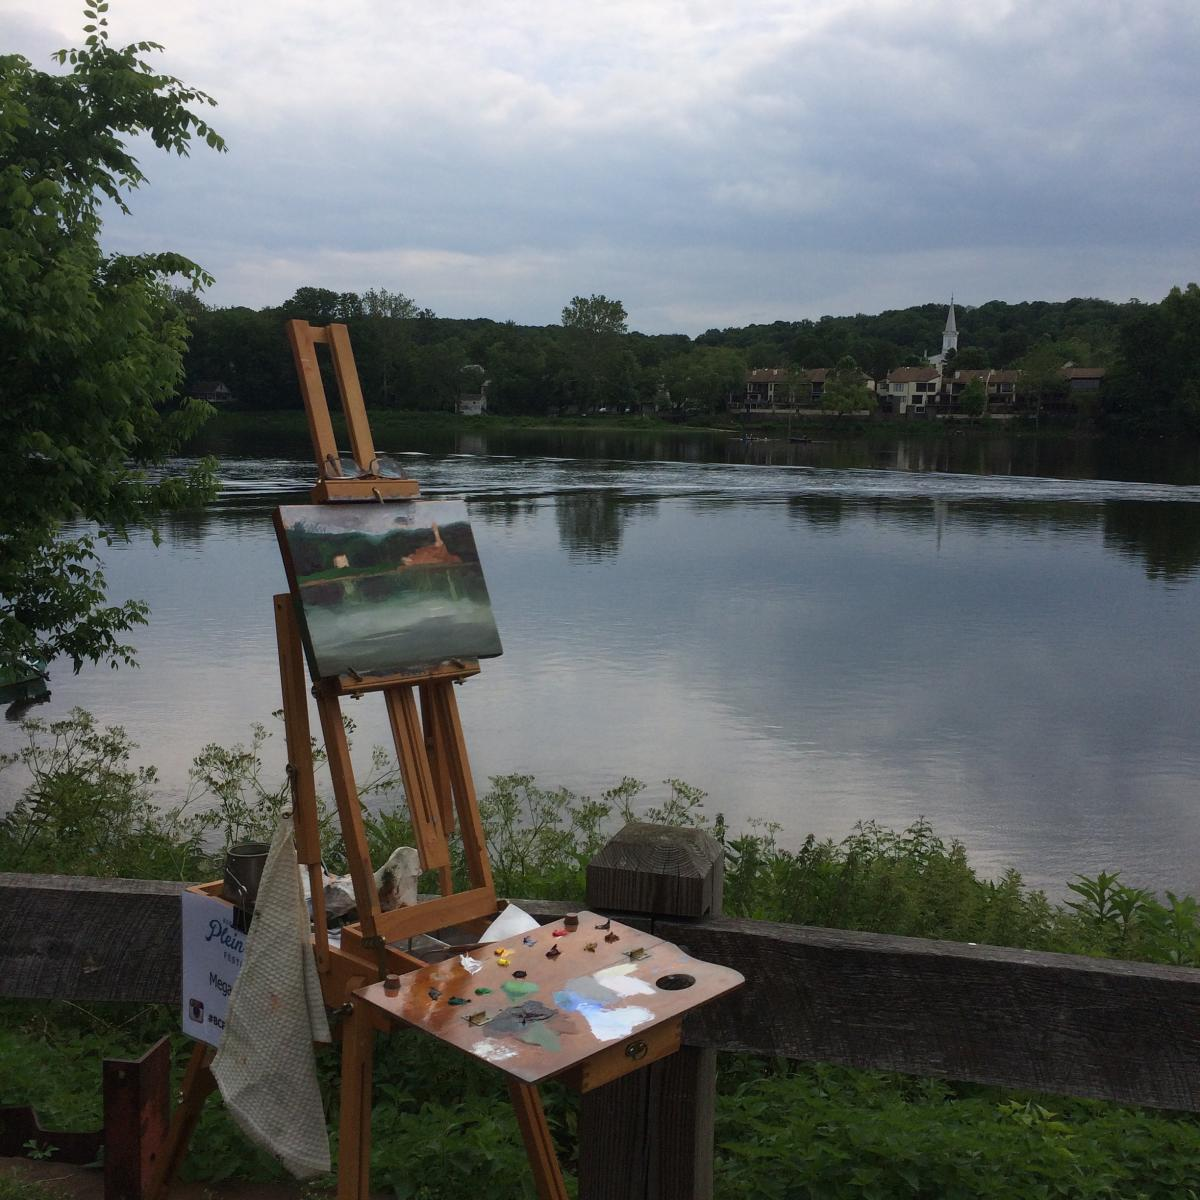 2016 Bucks County Plein Air Art